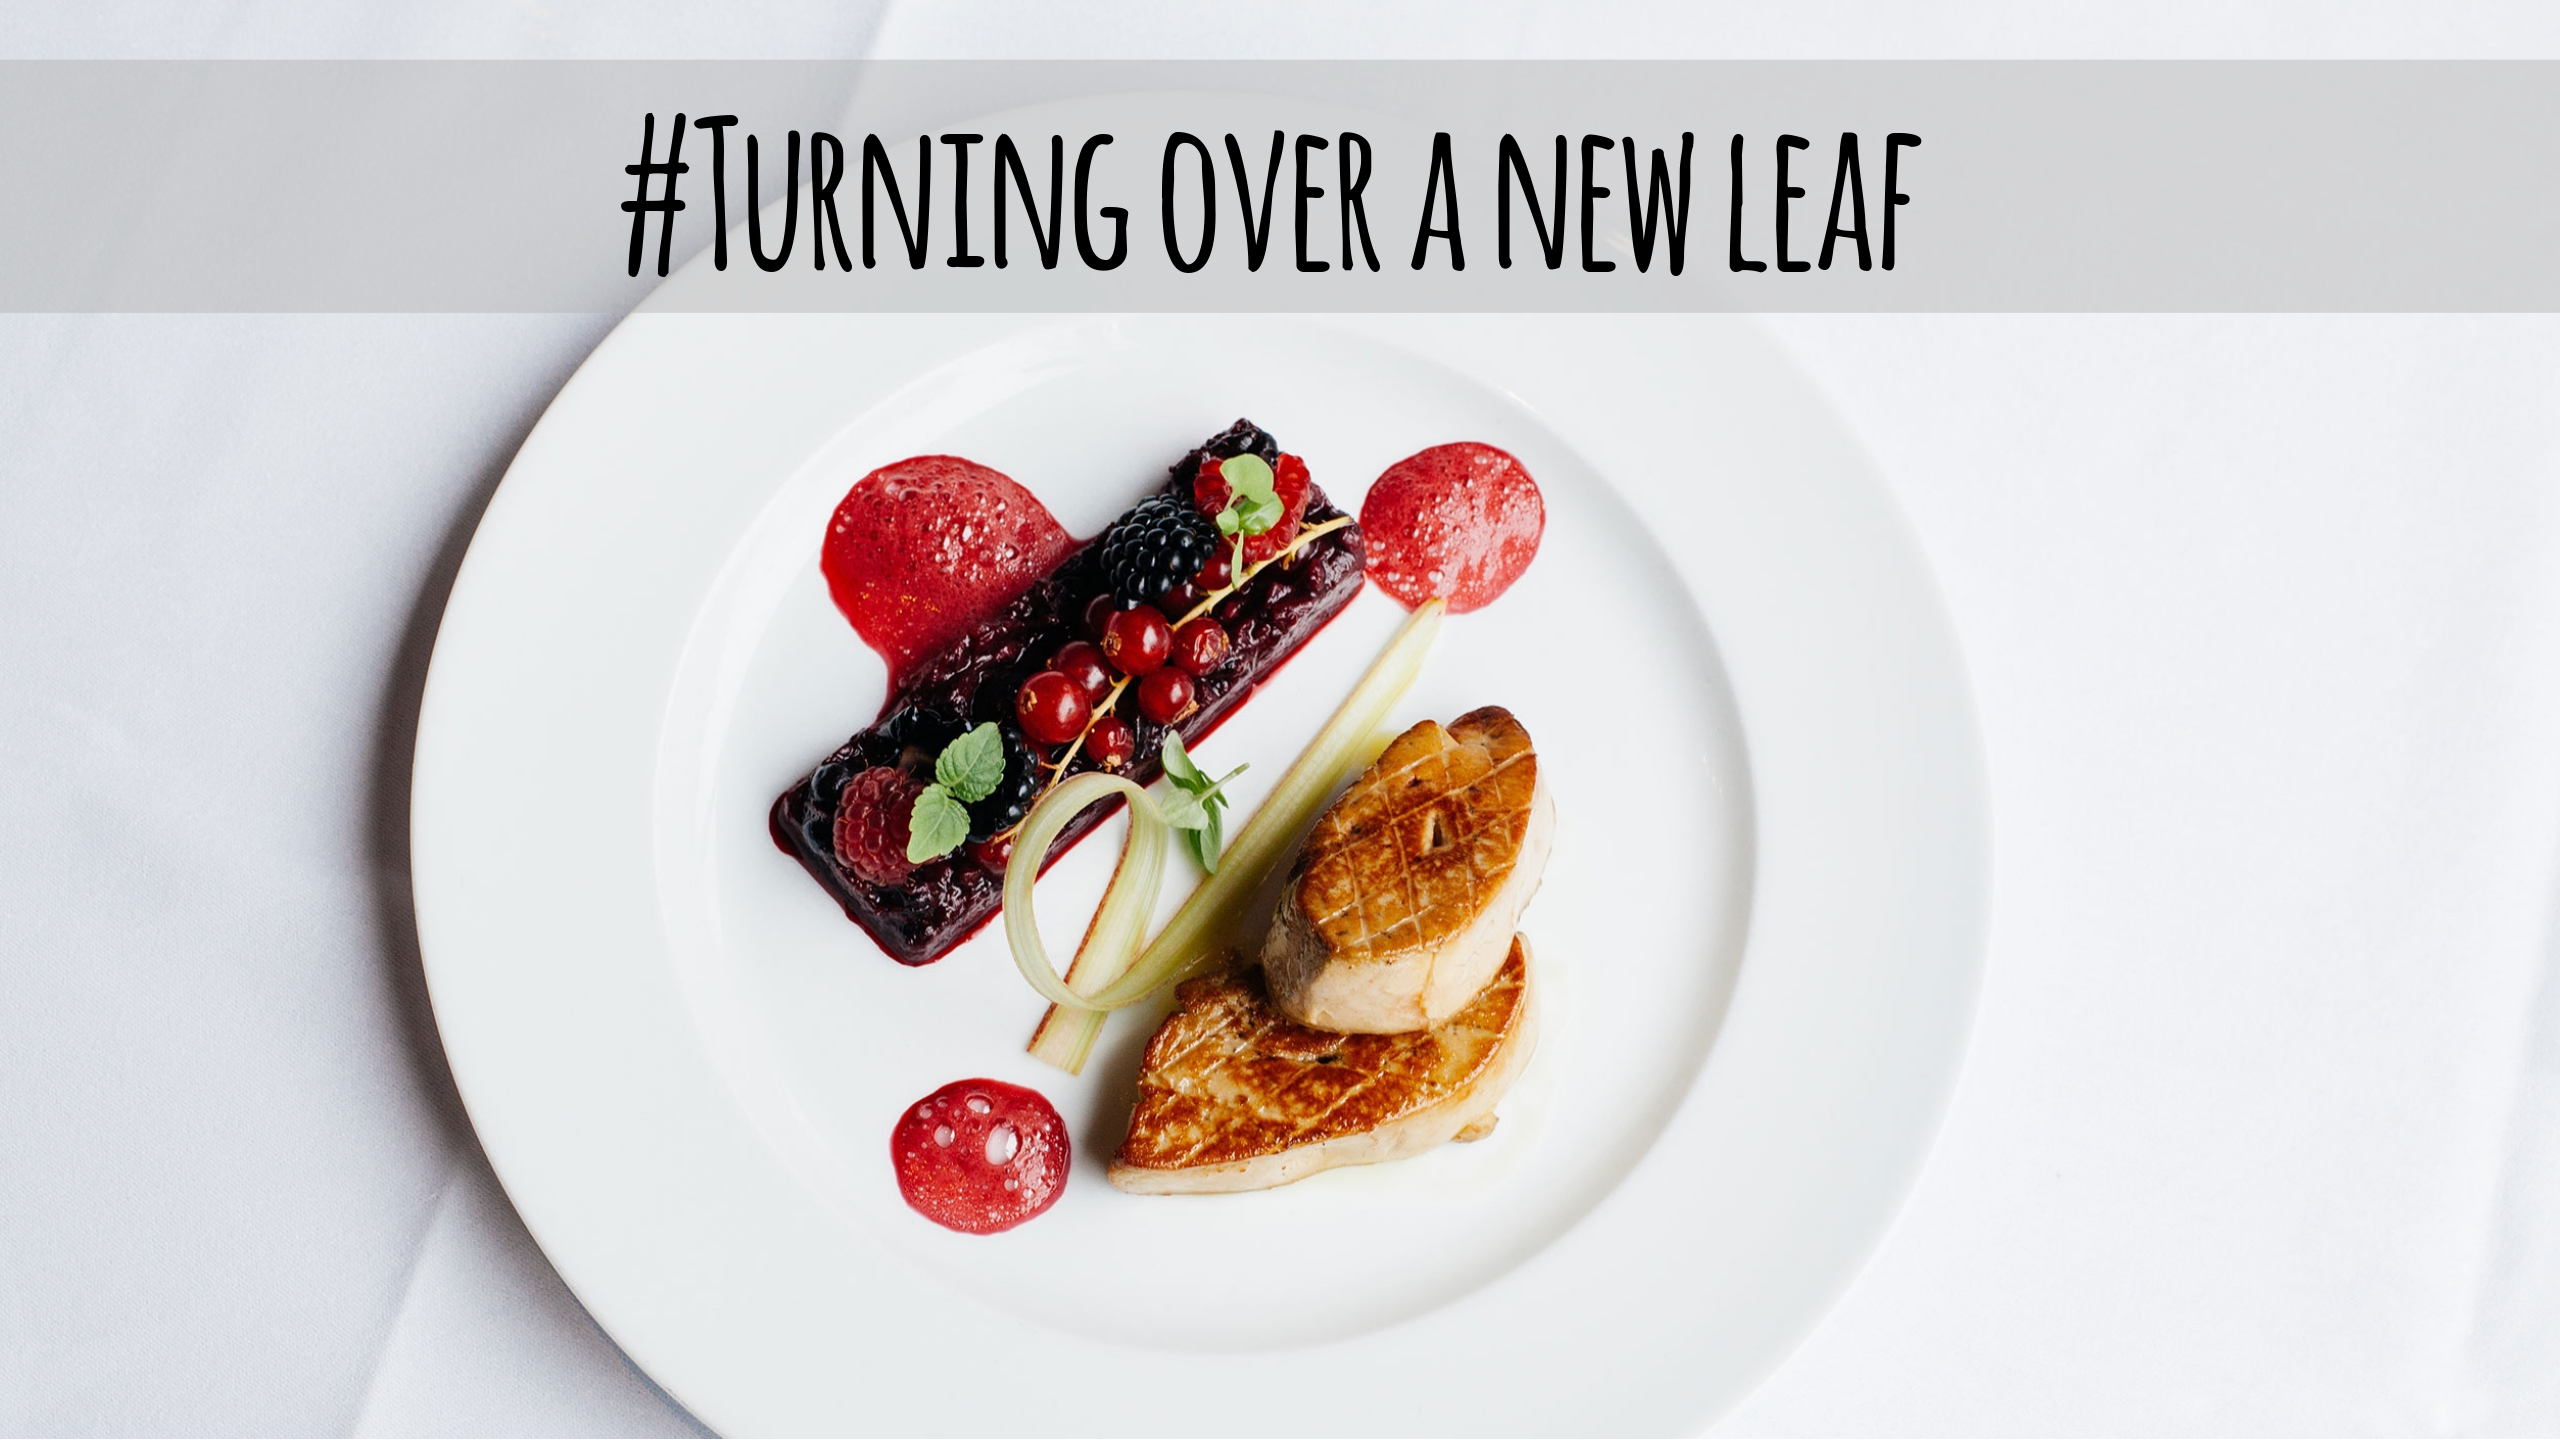 Morning tea thoughts | Turning over a new leaf